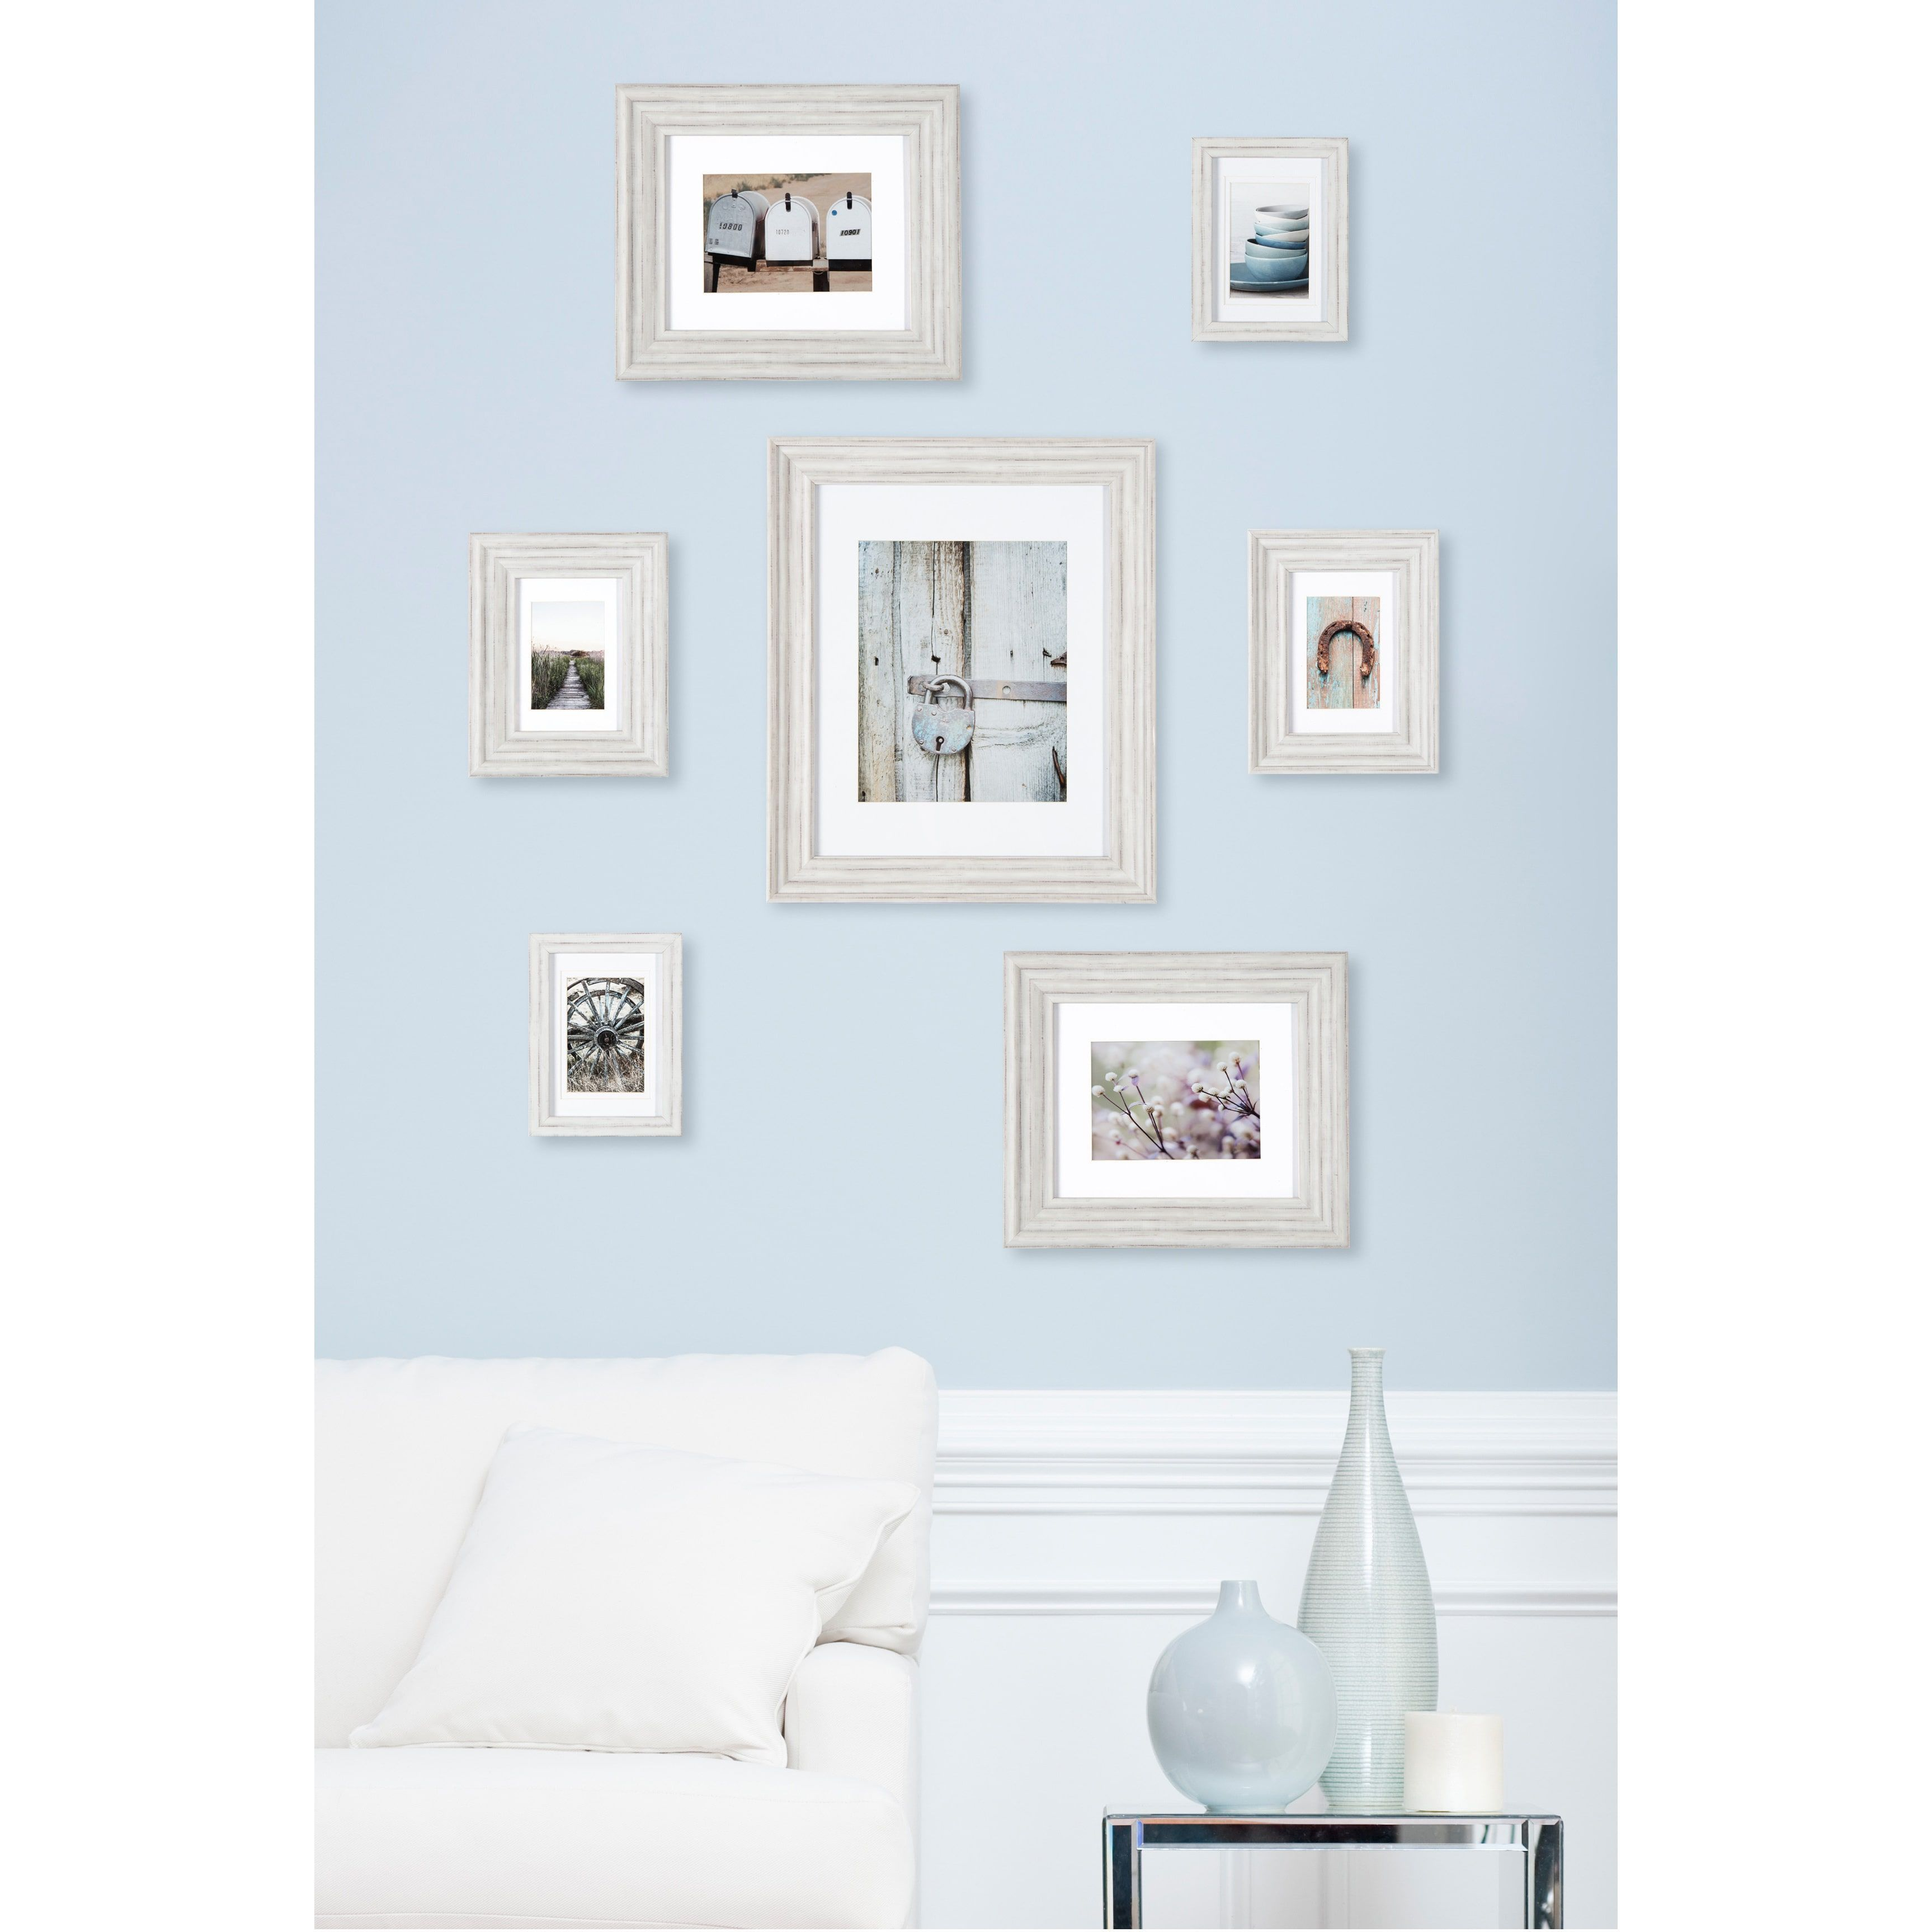 Online Shopping Bedding Furniture Electronics Jewelry Clothing More Picture Frame Sets Frames On Wall Picture Frames